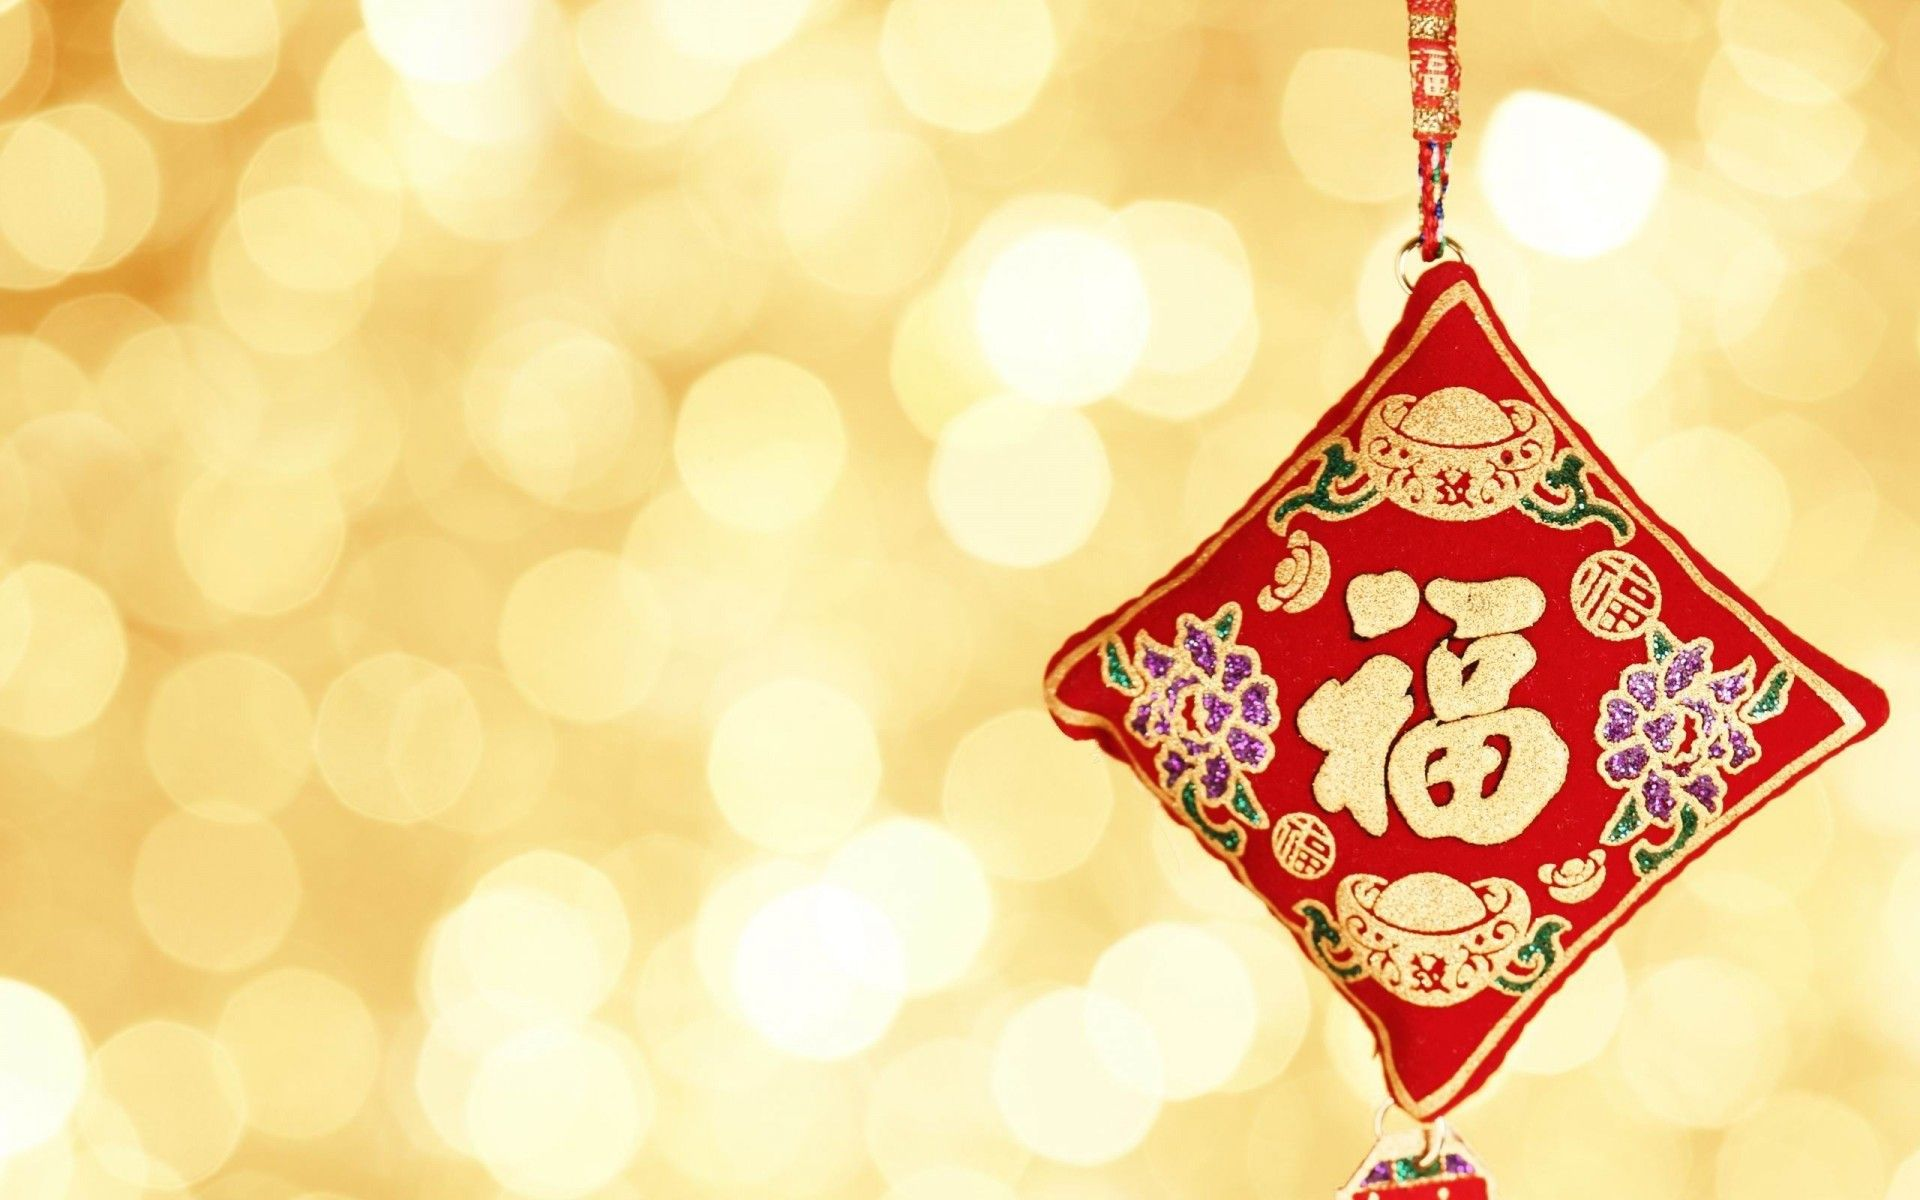 chinese new year wallpaper desktop wallpapers | chinese new year